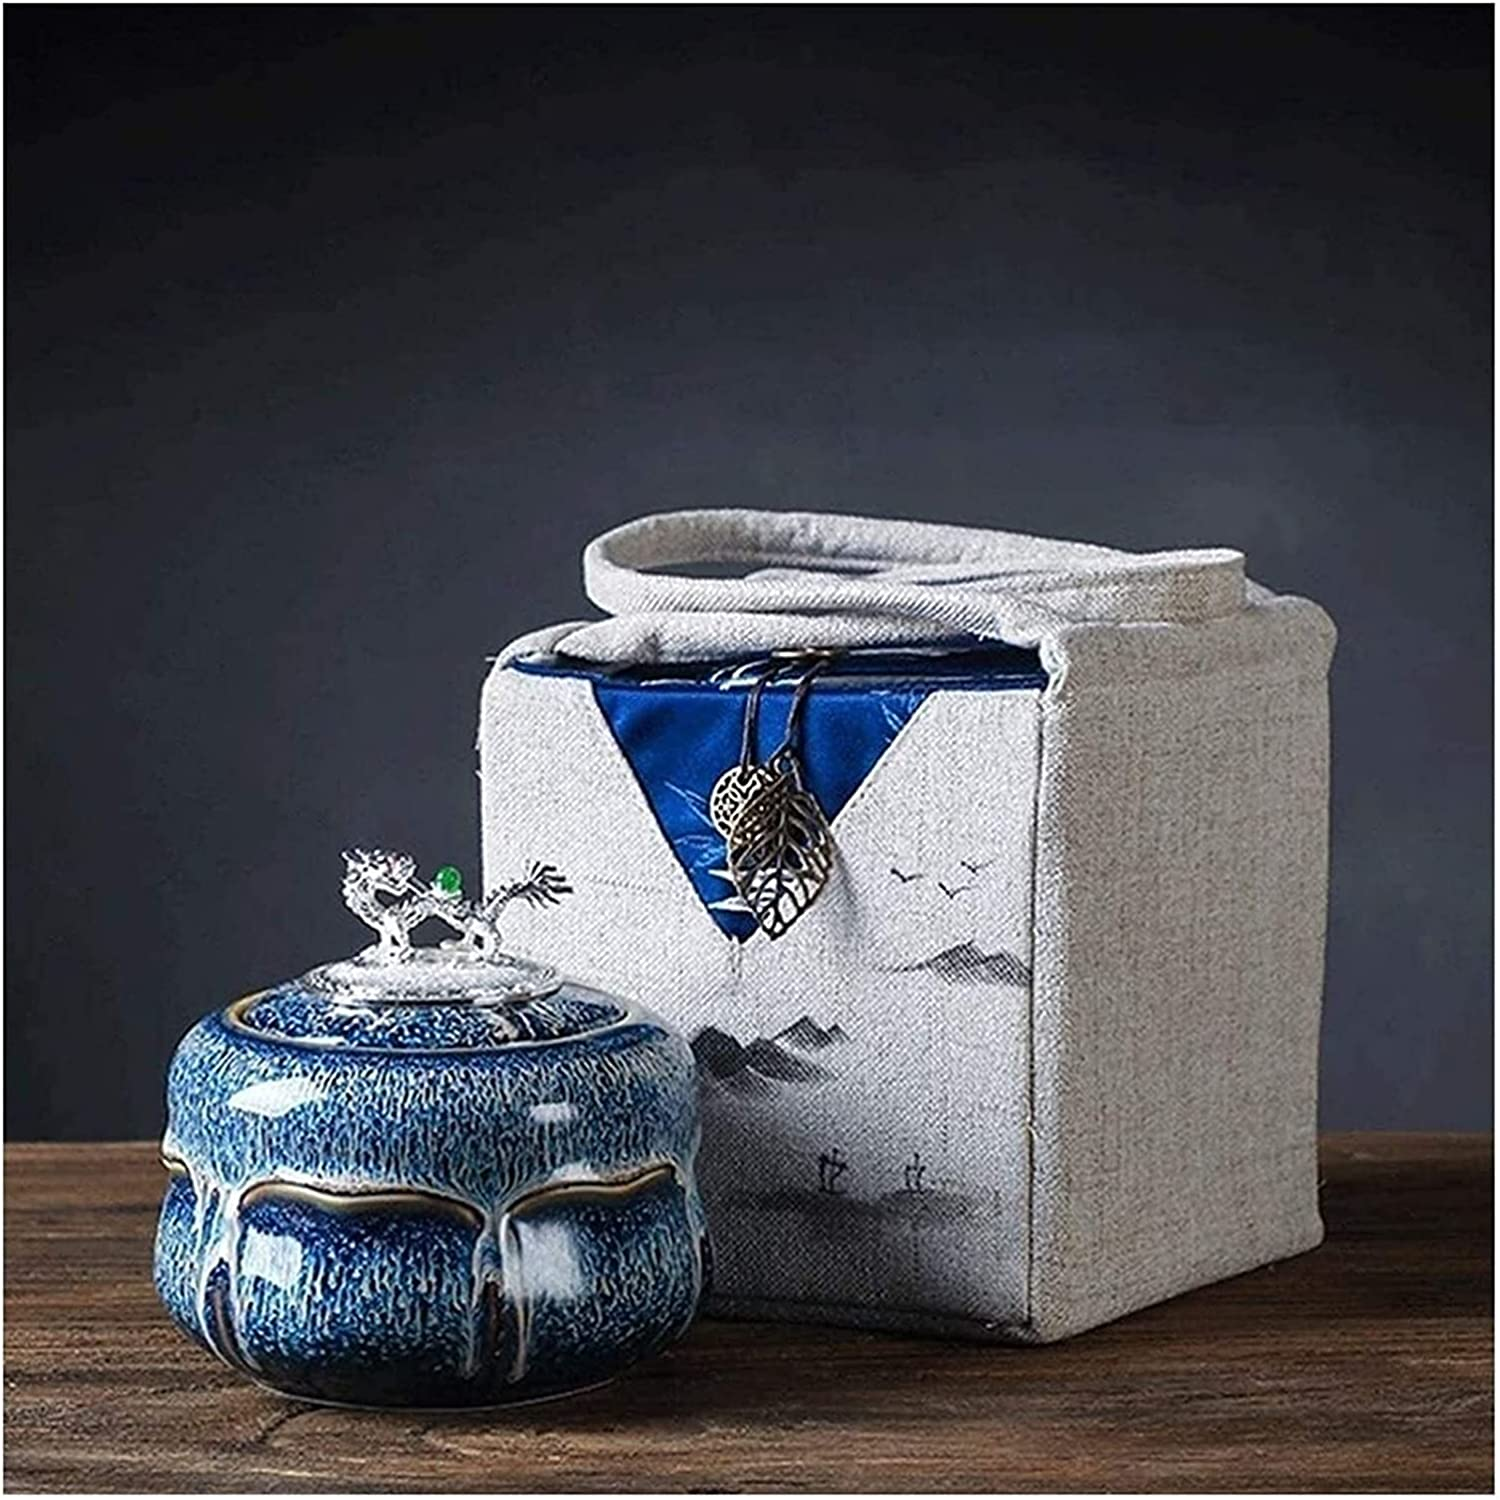 MTFZD Funeral Urn Mesa Mall for Human Limited time for free shipping Ashes Sea Packaging Gift Box Ceramic